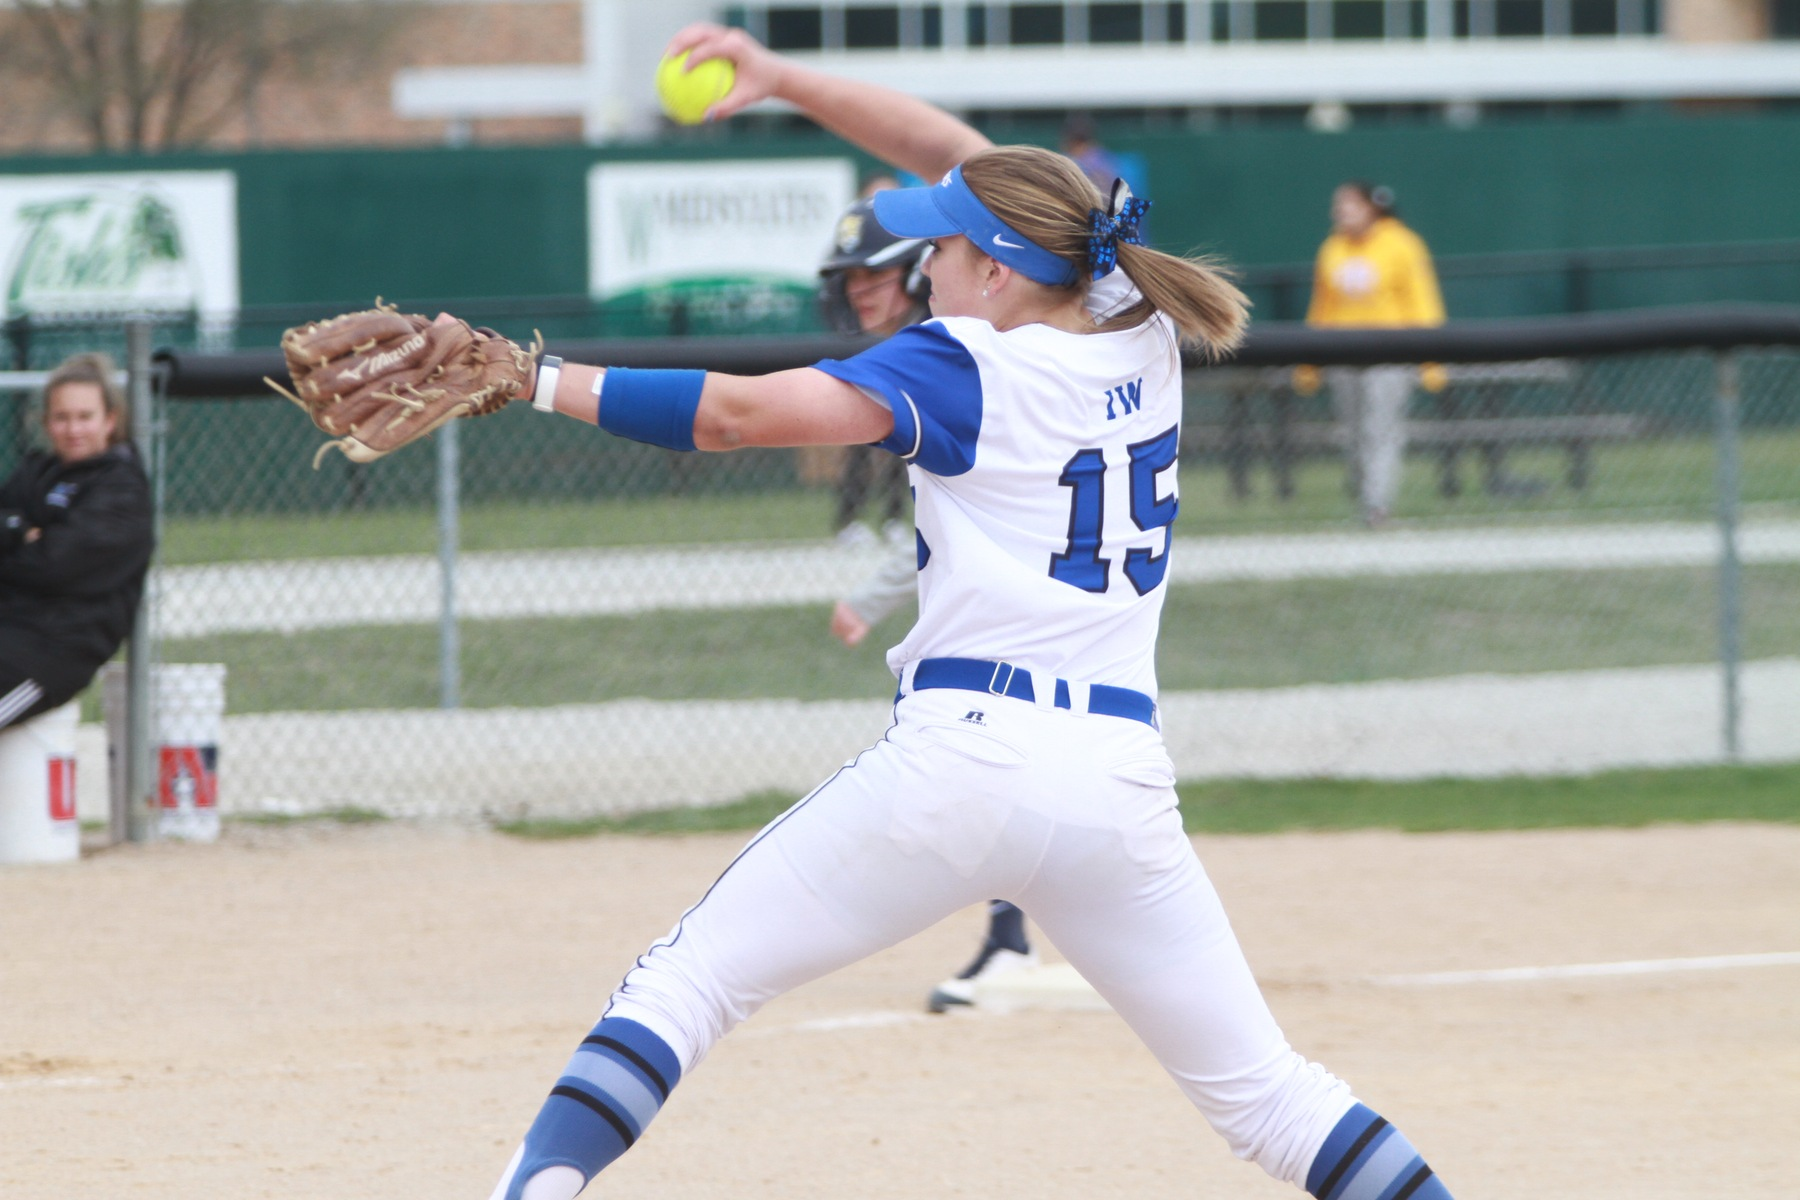 Hicks rakes in All-American honors, earns NJCAA, NFCA, FPN recognition, Gregory named to NFCA All-Midwest squad